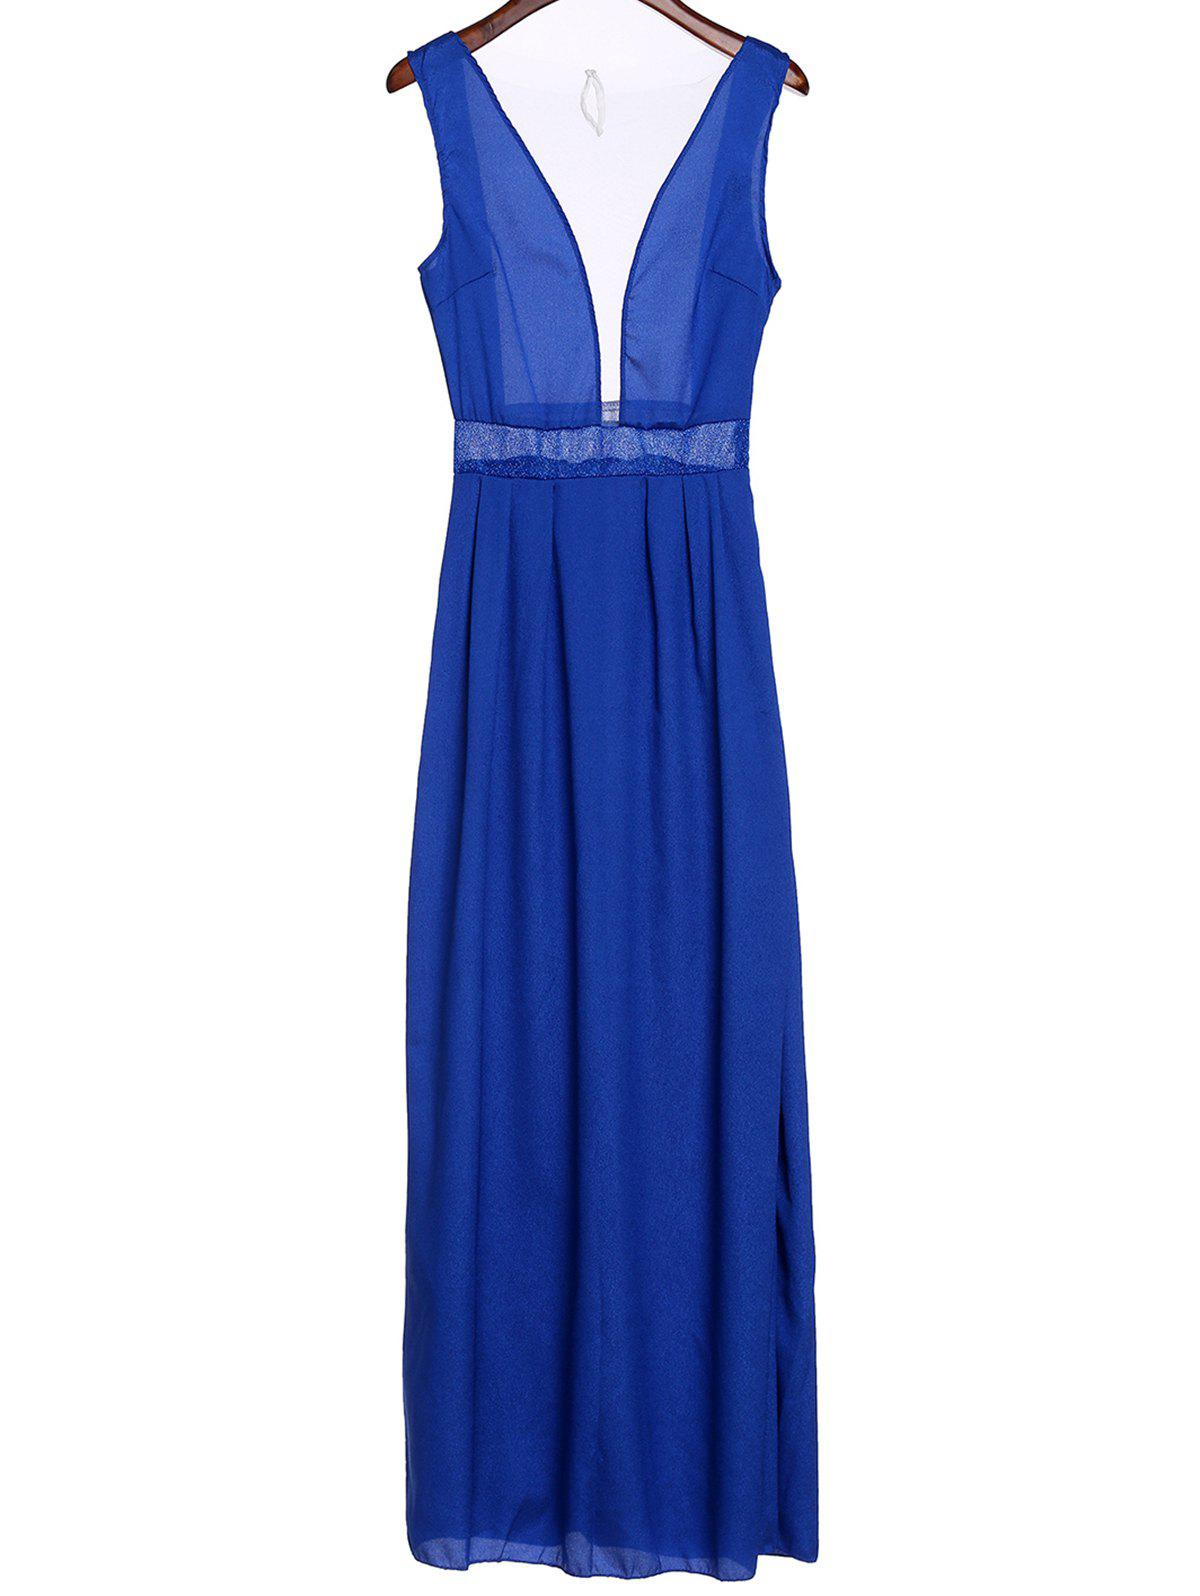 New Sexy Plunging Neck Sleeveless See-Through Spliced Women's Prom Dress